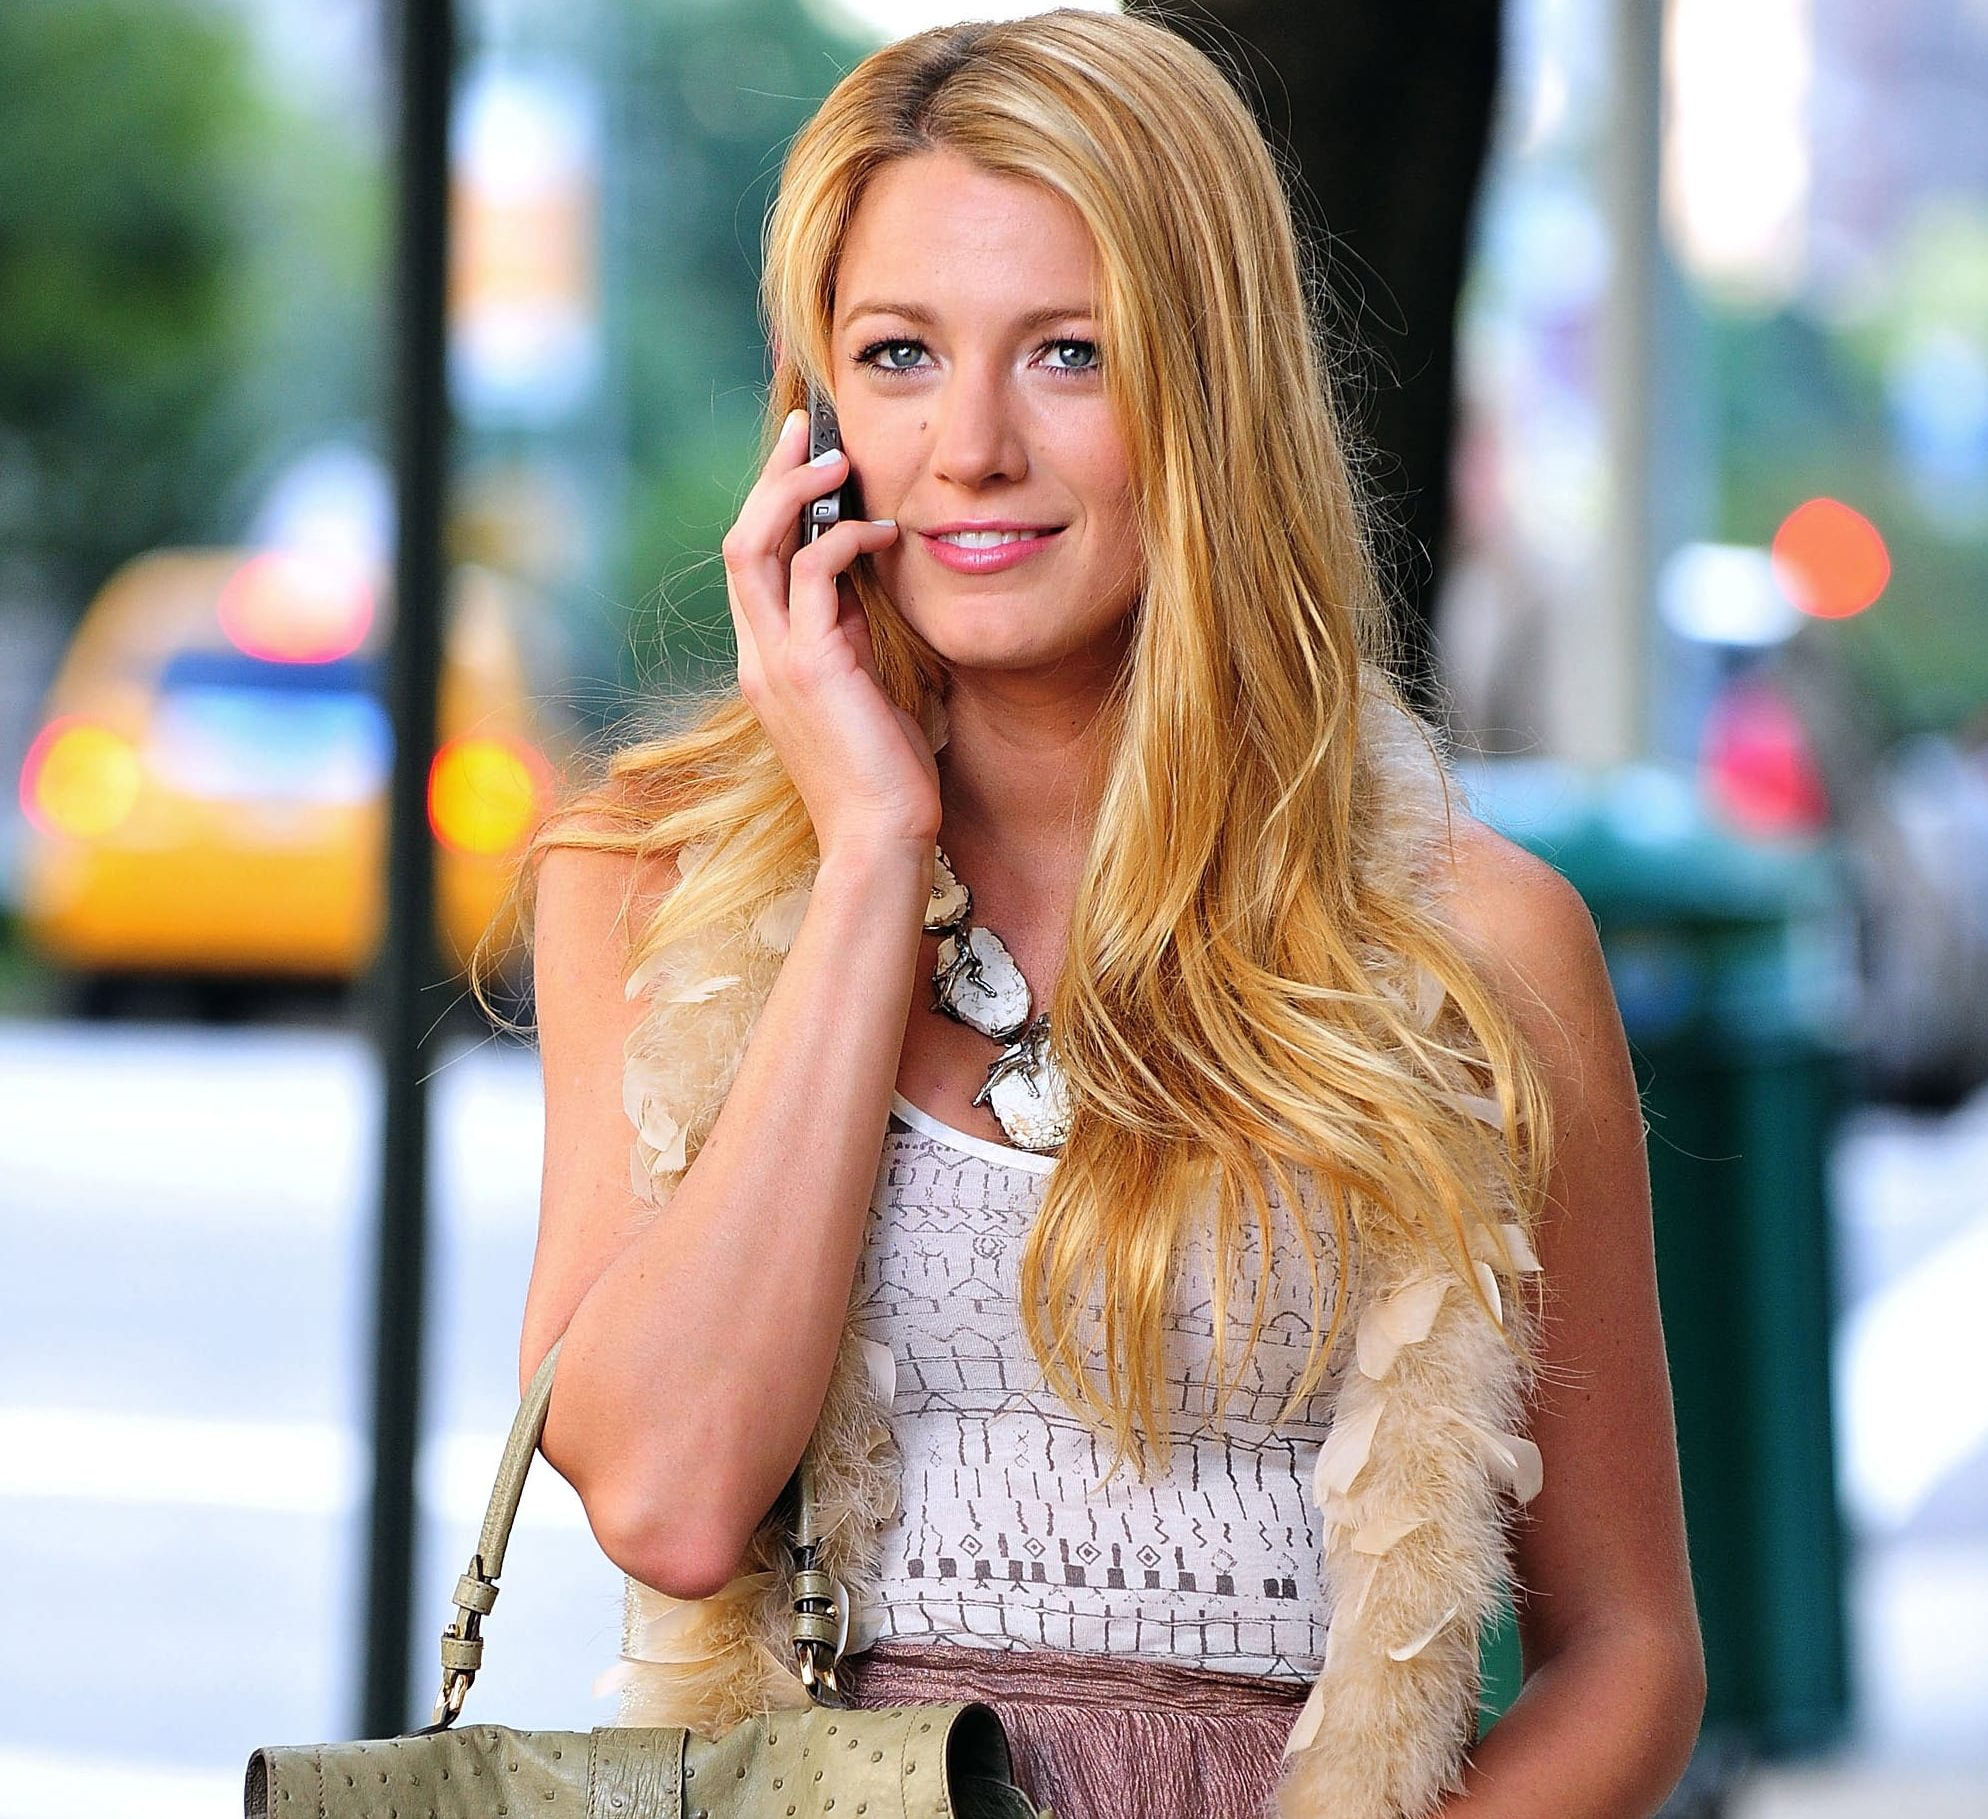 Blake Lively Best Gossip Girl Style e1625493390812 25 Things You Never Knew About Mrs. Doubtfire